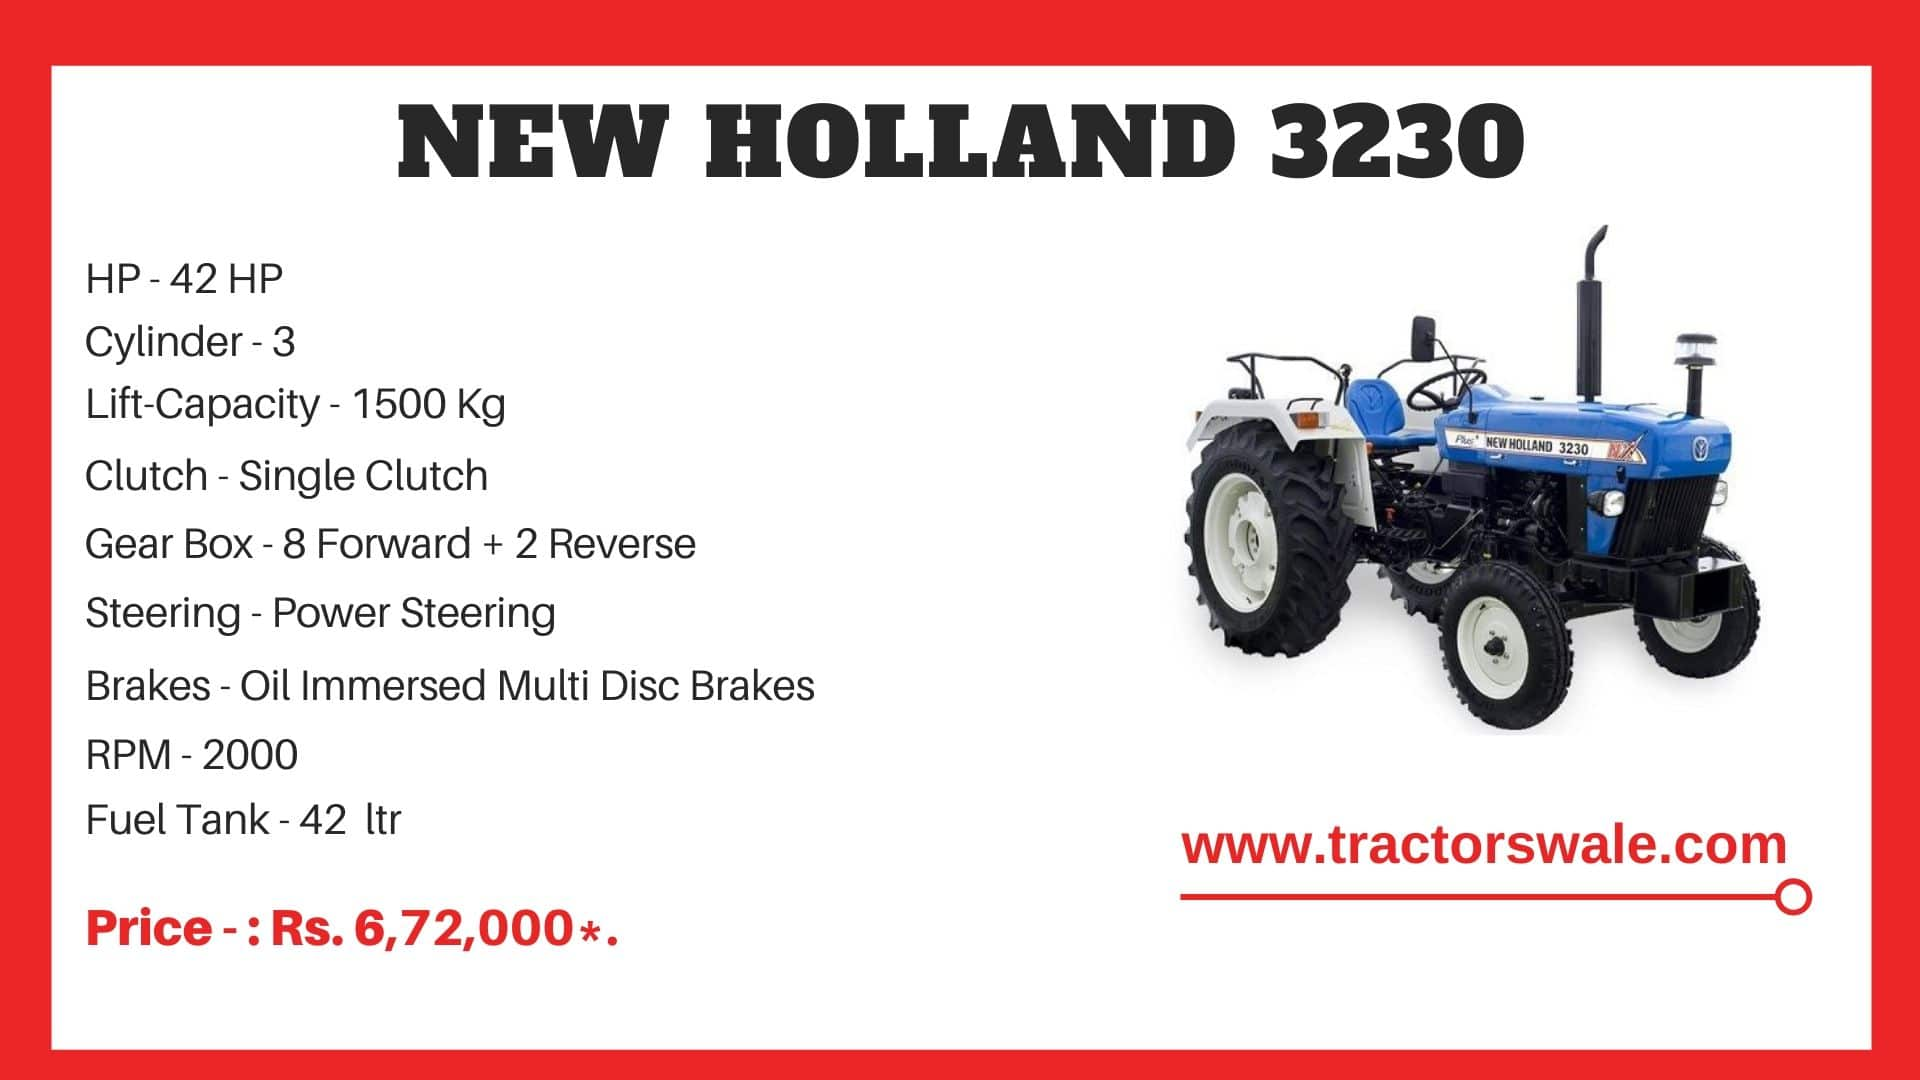 New Holland 3230 tractor price